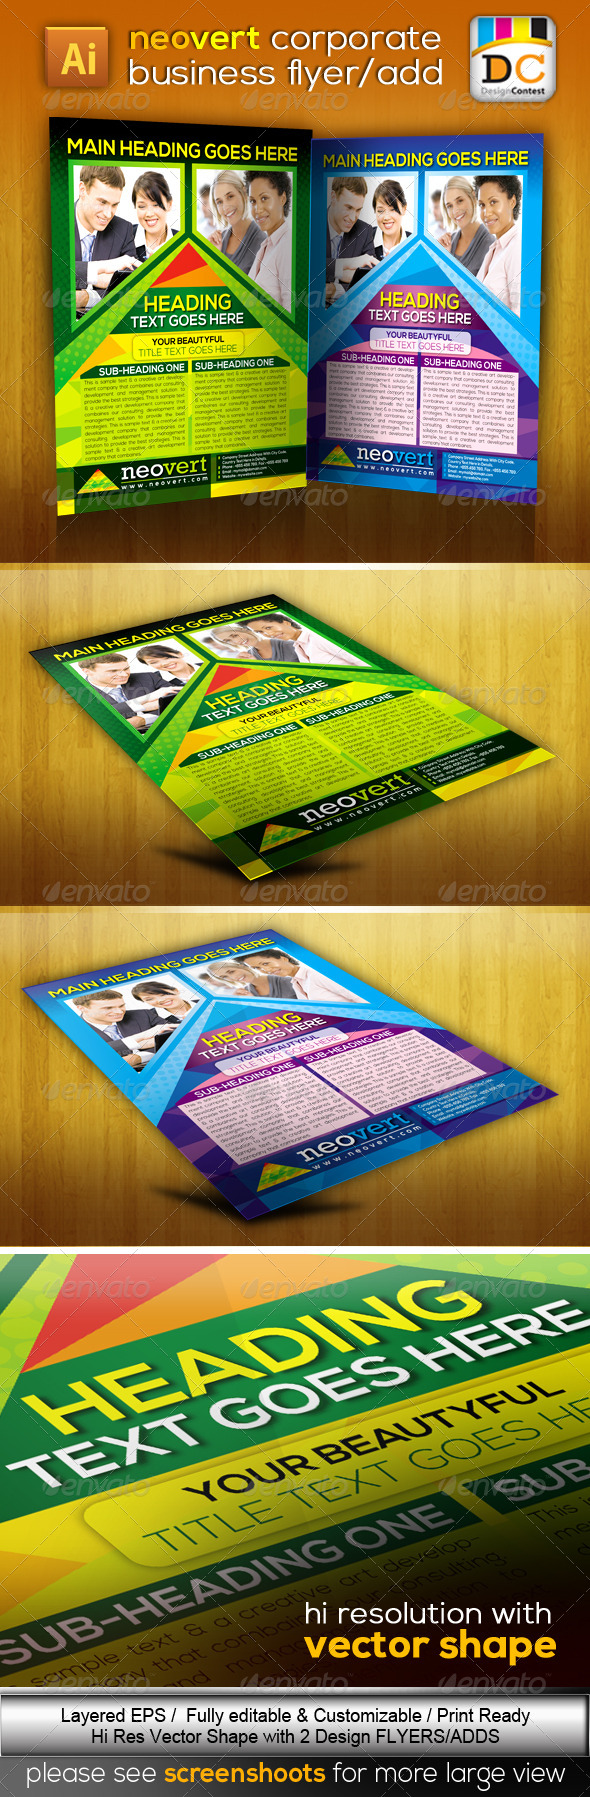 NeoVert_Corporate Business Flyers/Adds - Corporate Flyers